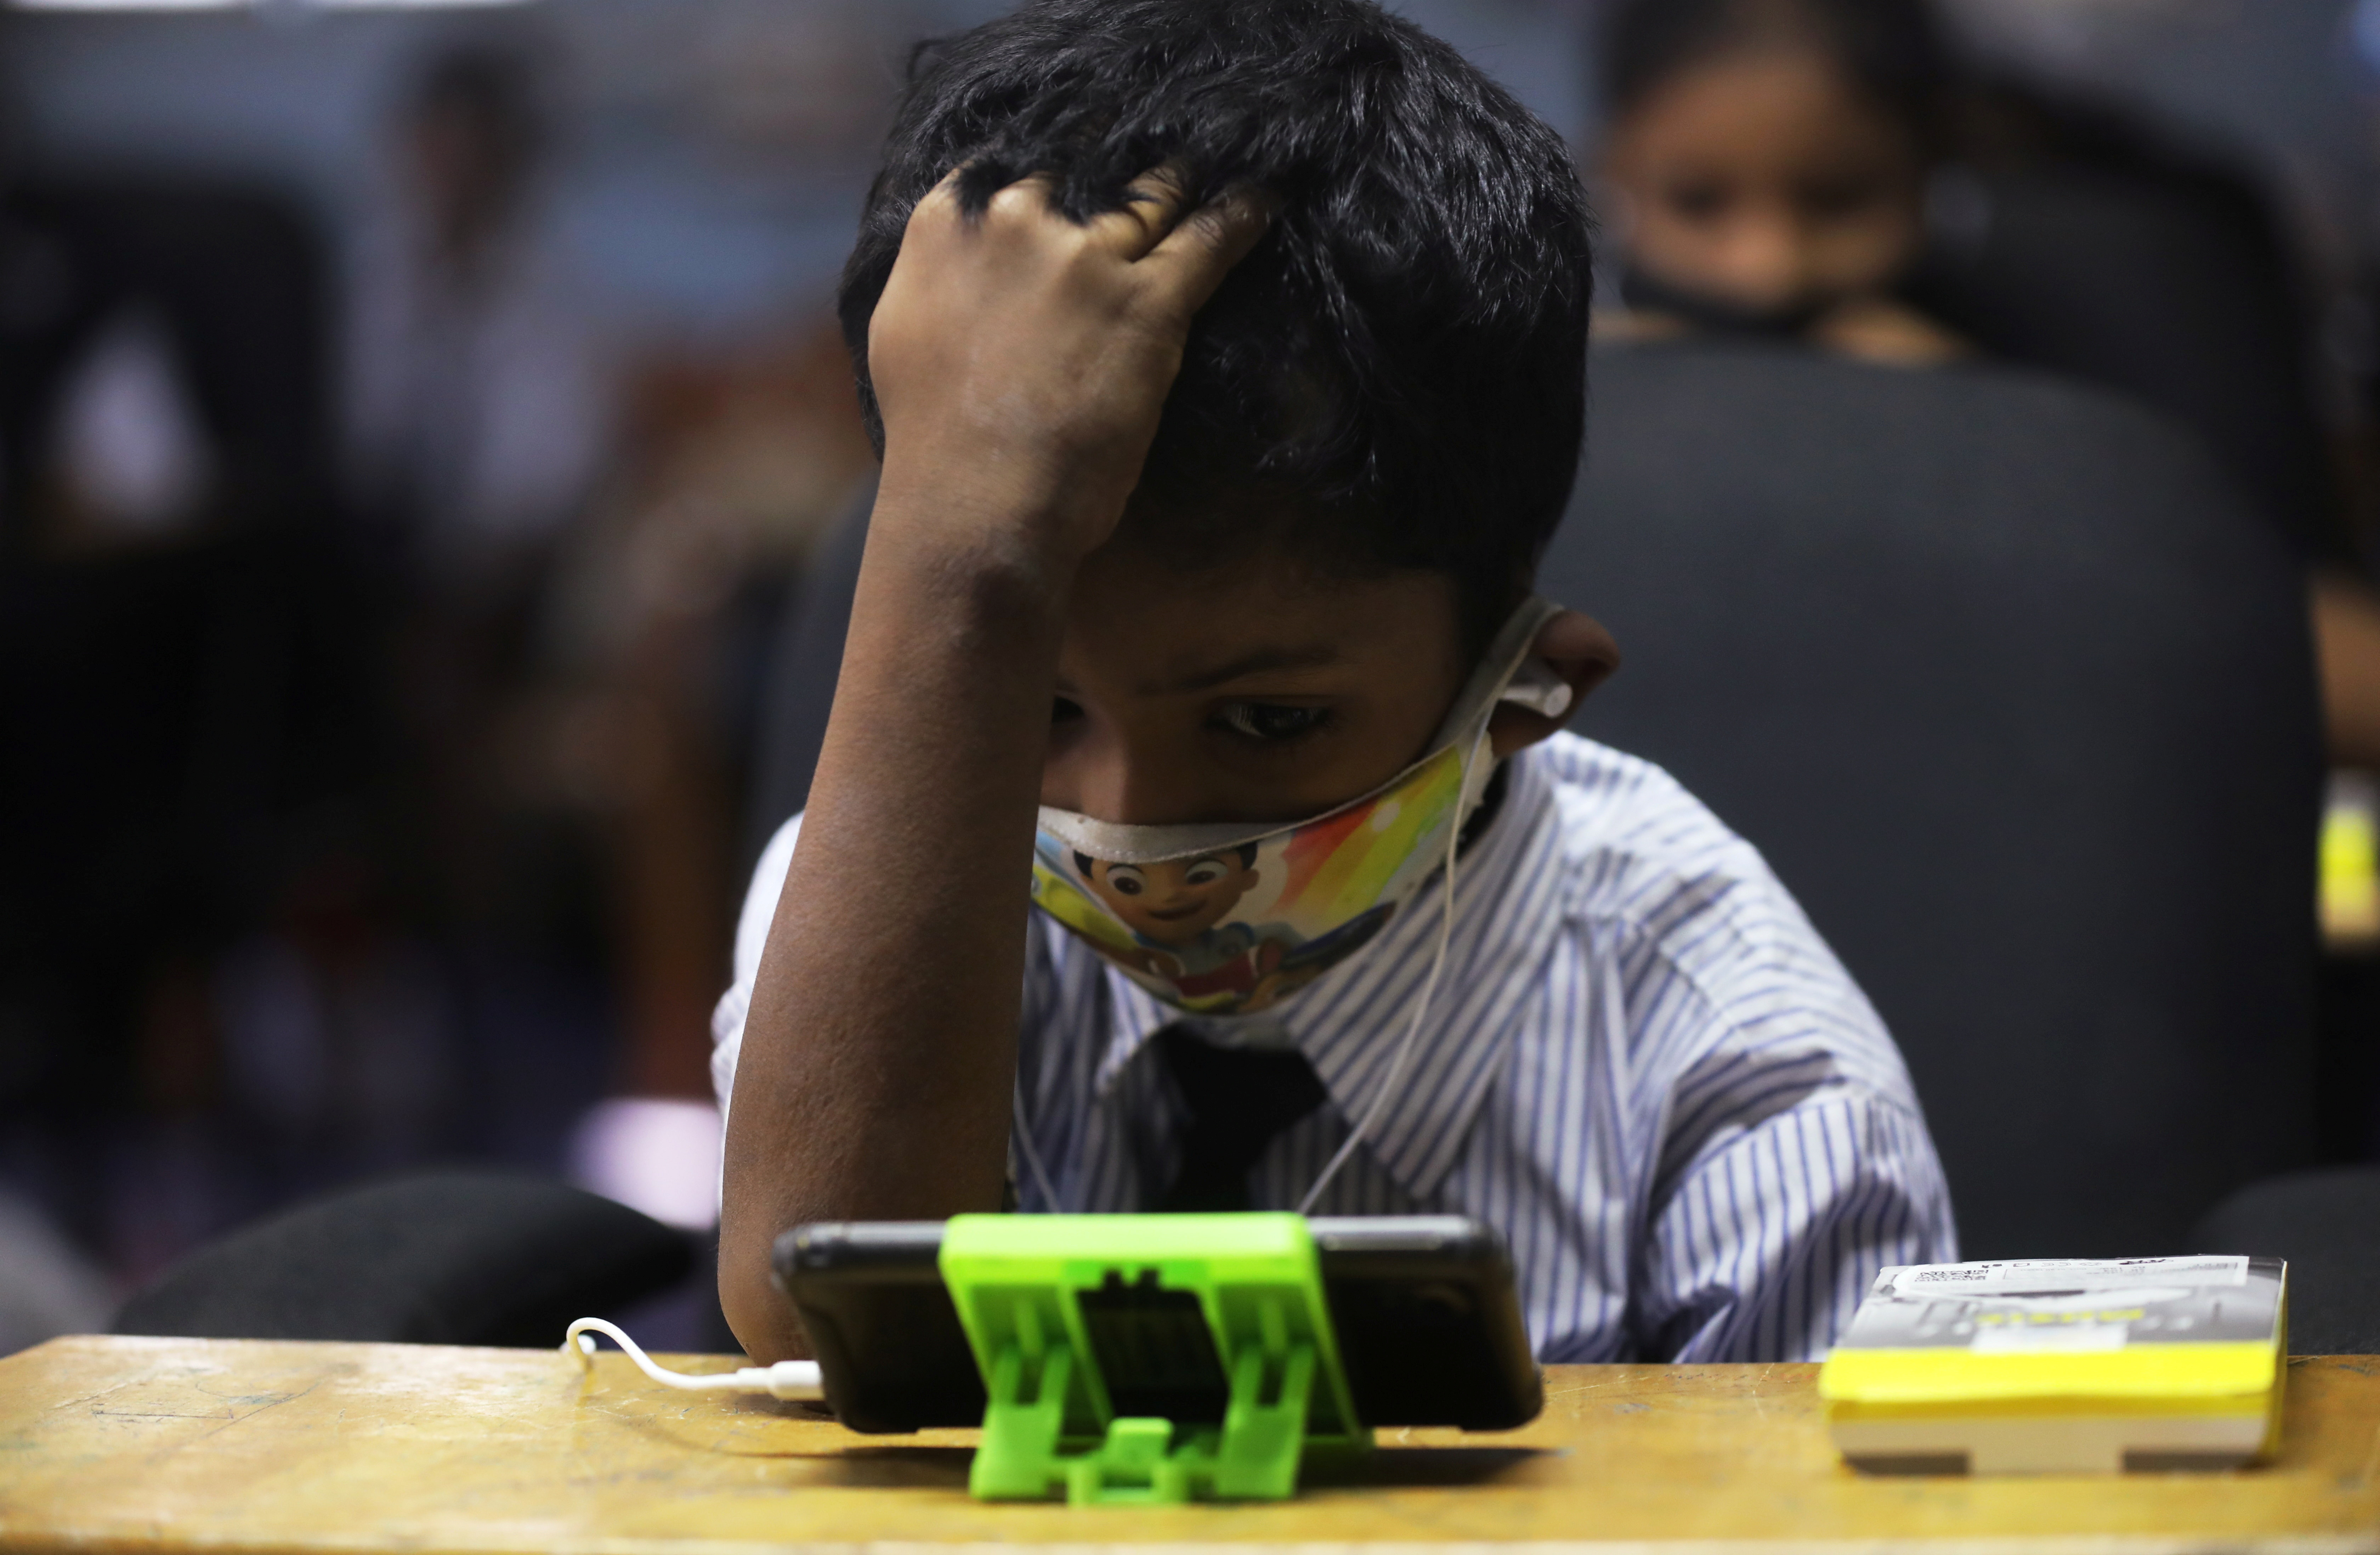 A student watches an online lecture on a mobile phone, inside a digital mobile education library, initiated to provide mobile phones to chidren who have no access to them for their education classes amidst the spread of the coronavirus disease (COVID-19) in Mumbai, India, October 16, 2020. REUTERS/Francis Mascarenhas - RC2KJJ932W9L